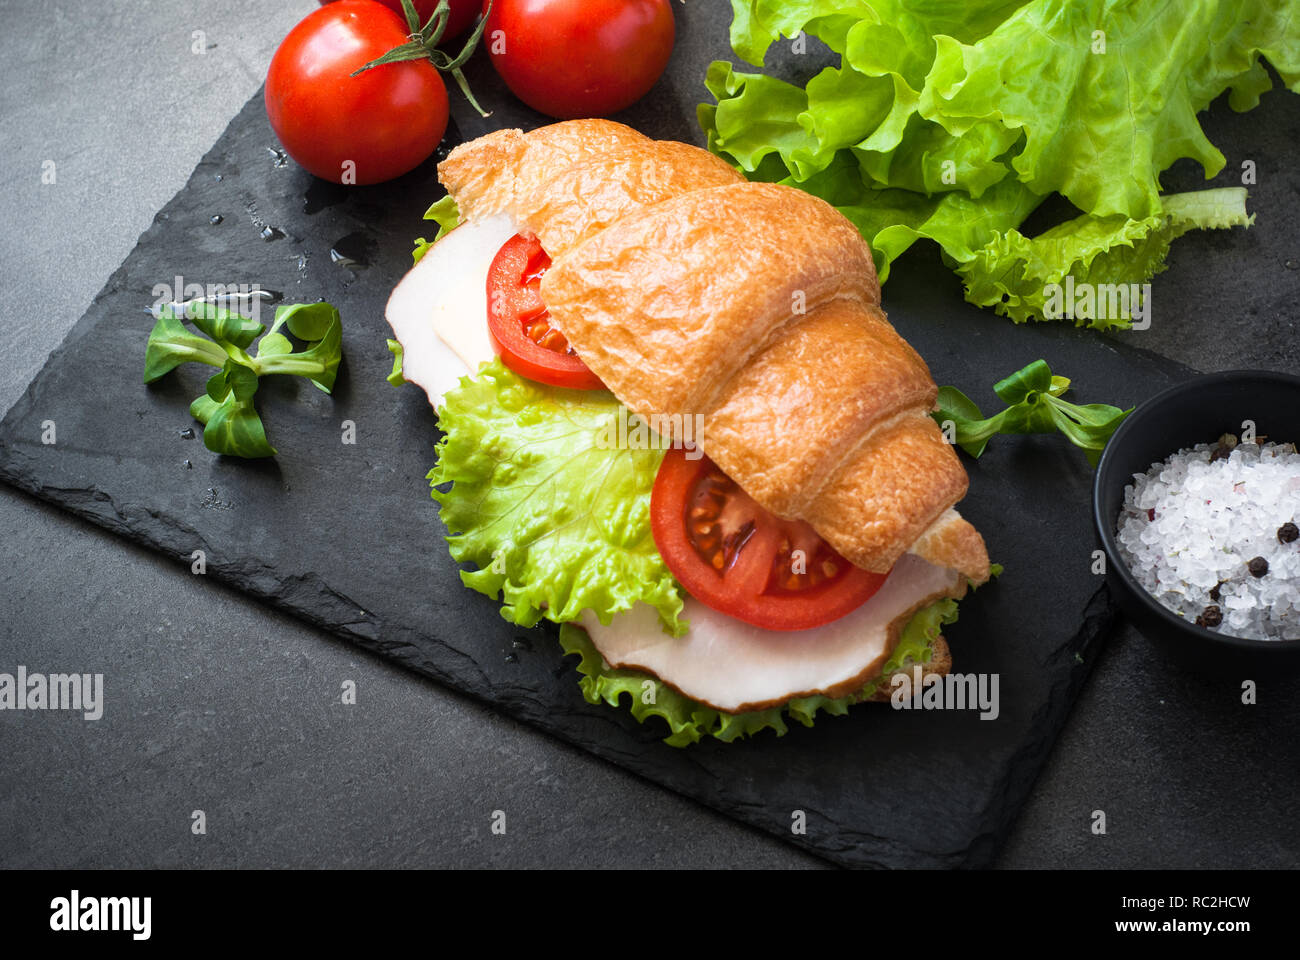 Croissant sandwich with ham, cheese, lettuce and tomato - Stock Image